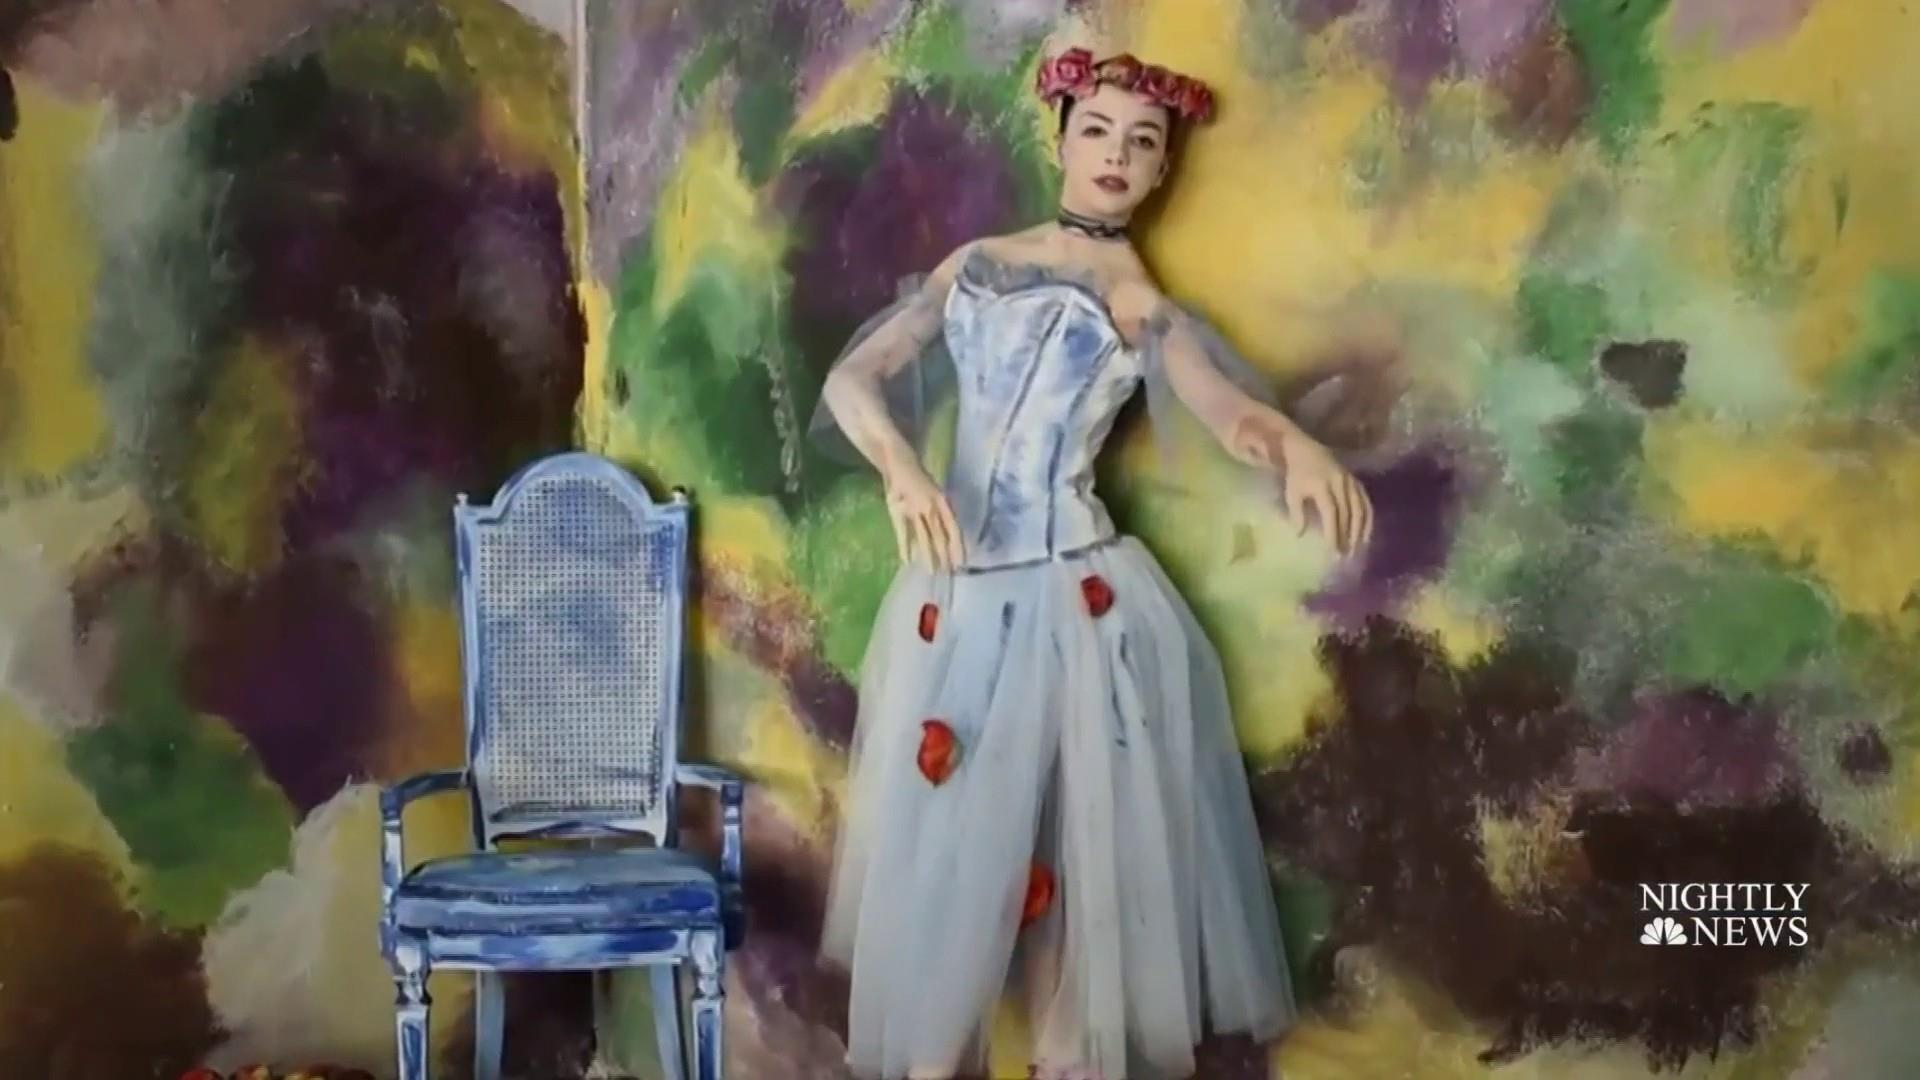 Meet the young artist whose paintings live and breathe